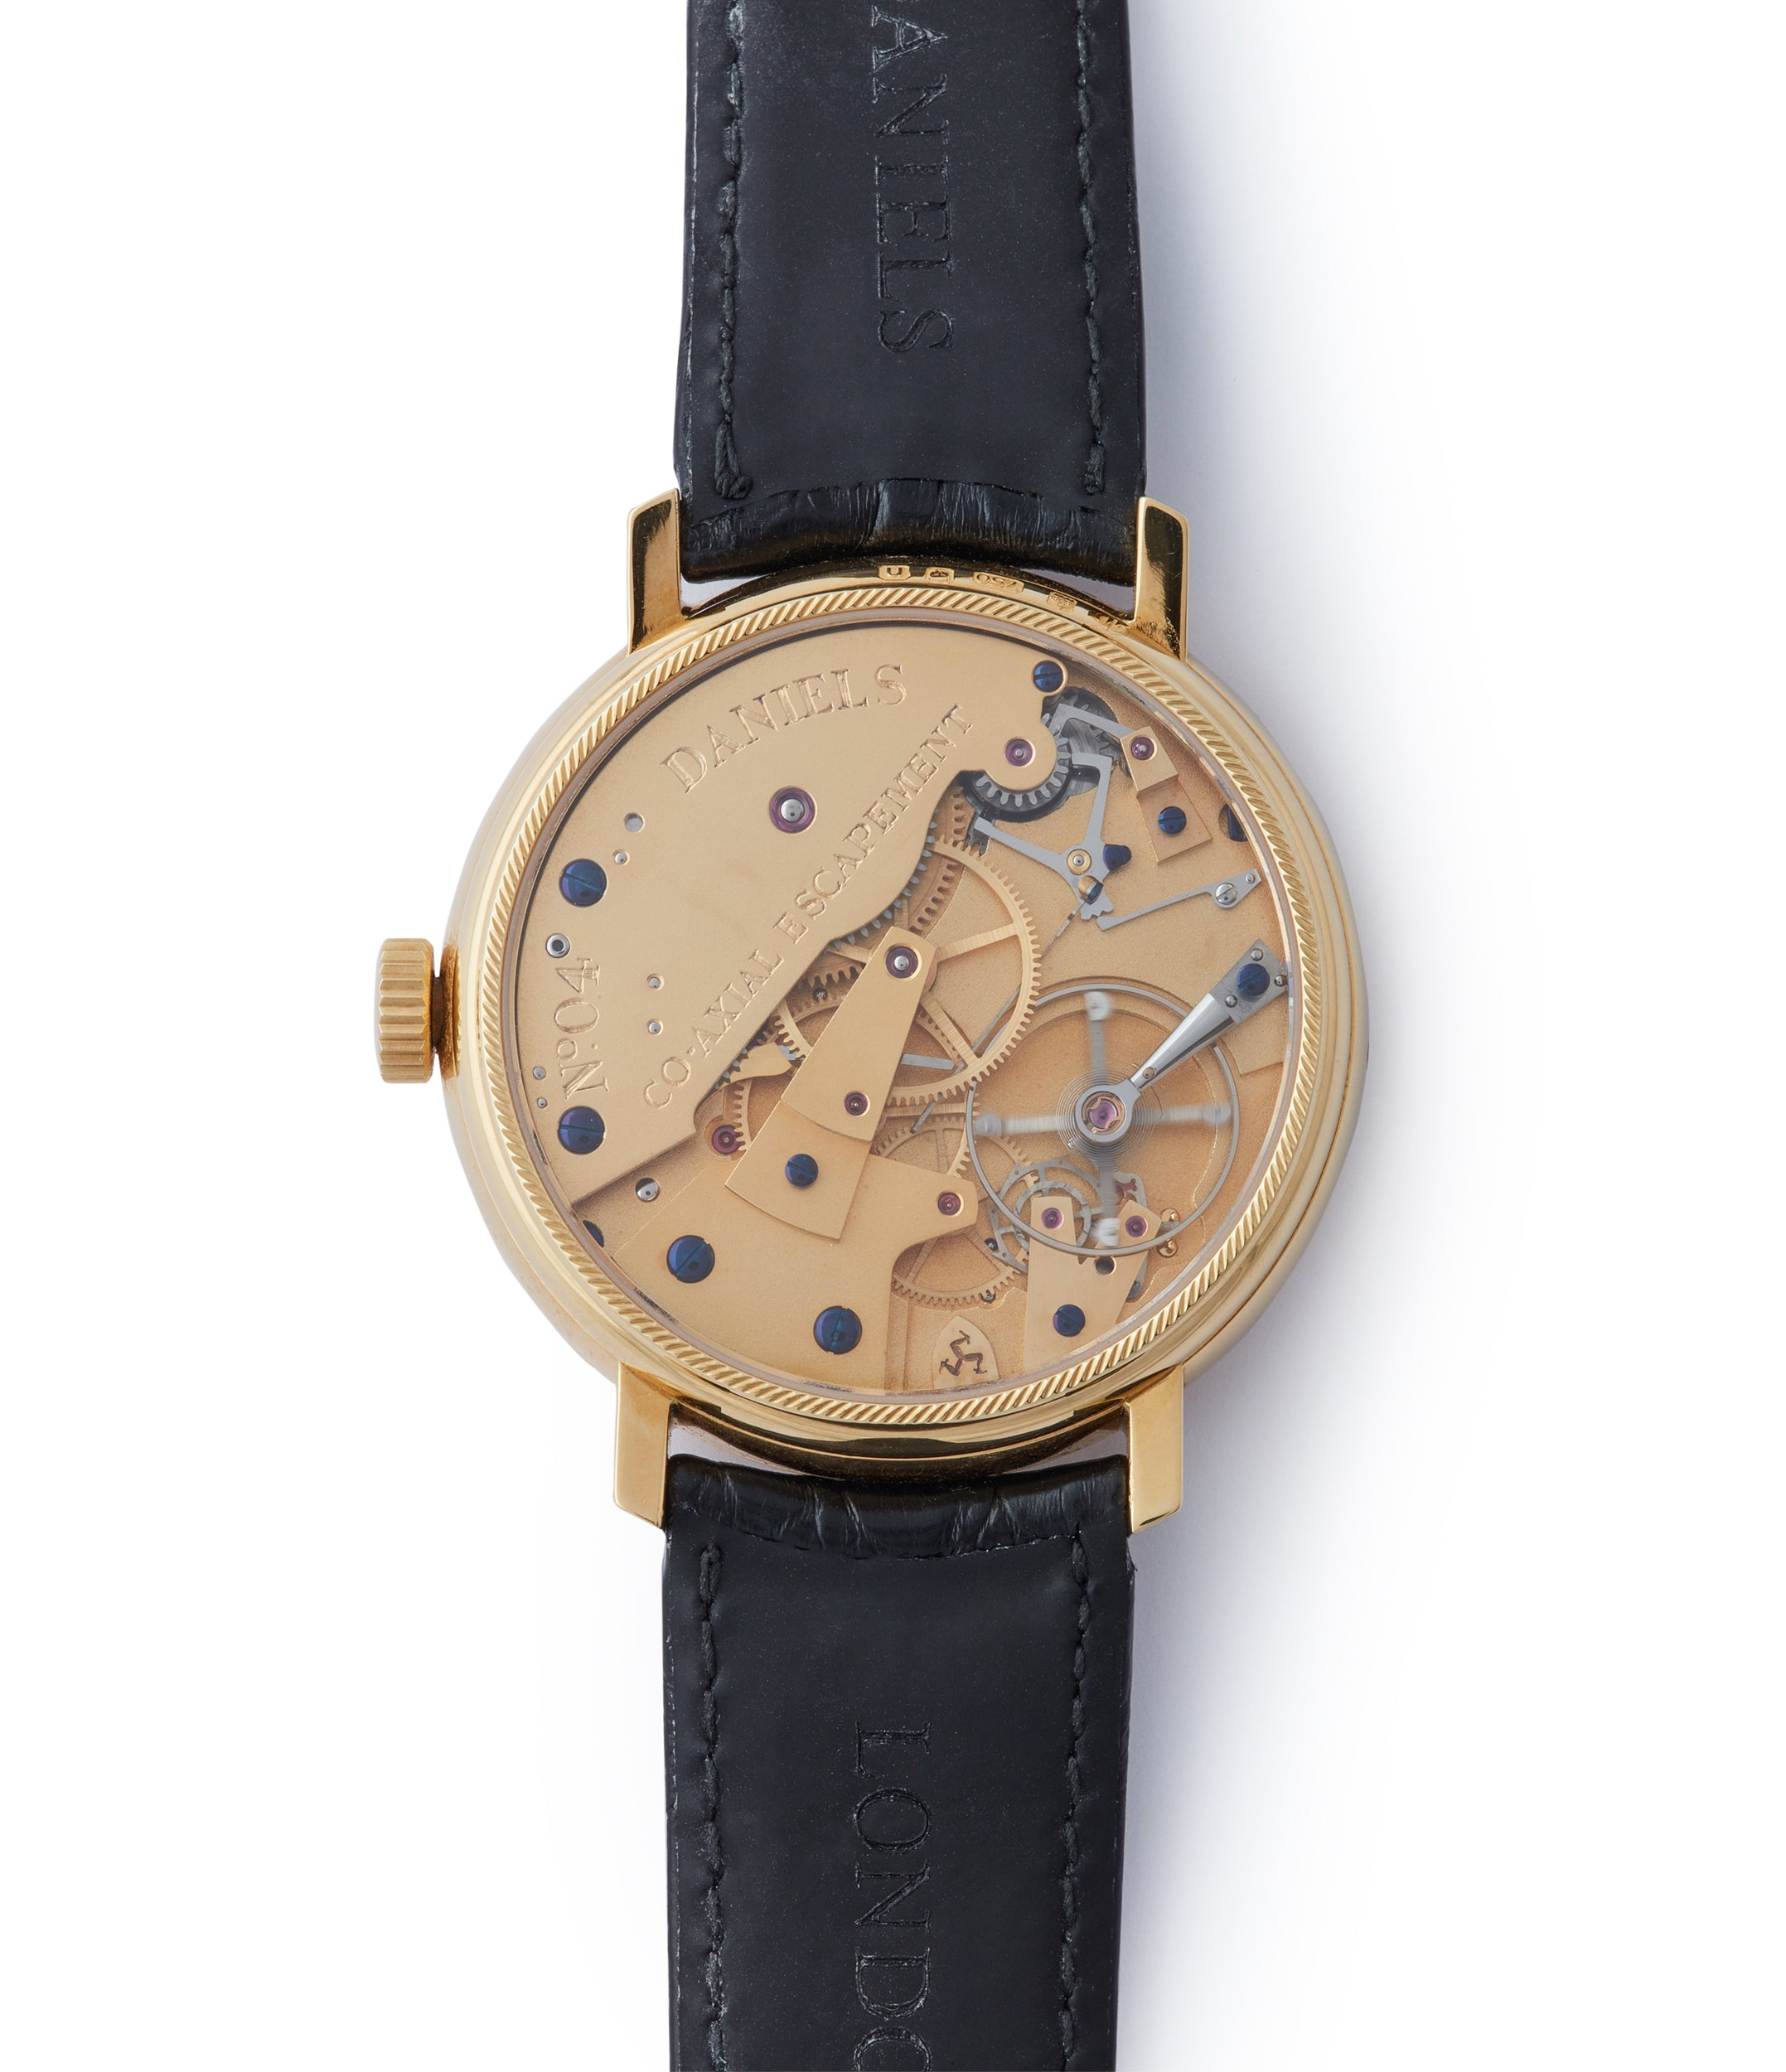 manual-winding George Daniels Anniversary watch by Roger W. Smith independent watchmaker yellow gold rare watch for sale online A Collected Man London with signed papers